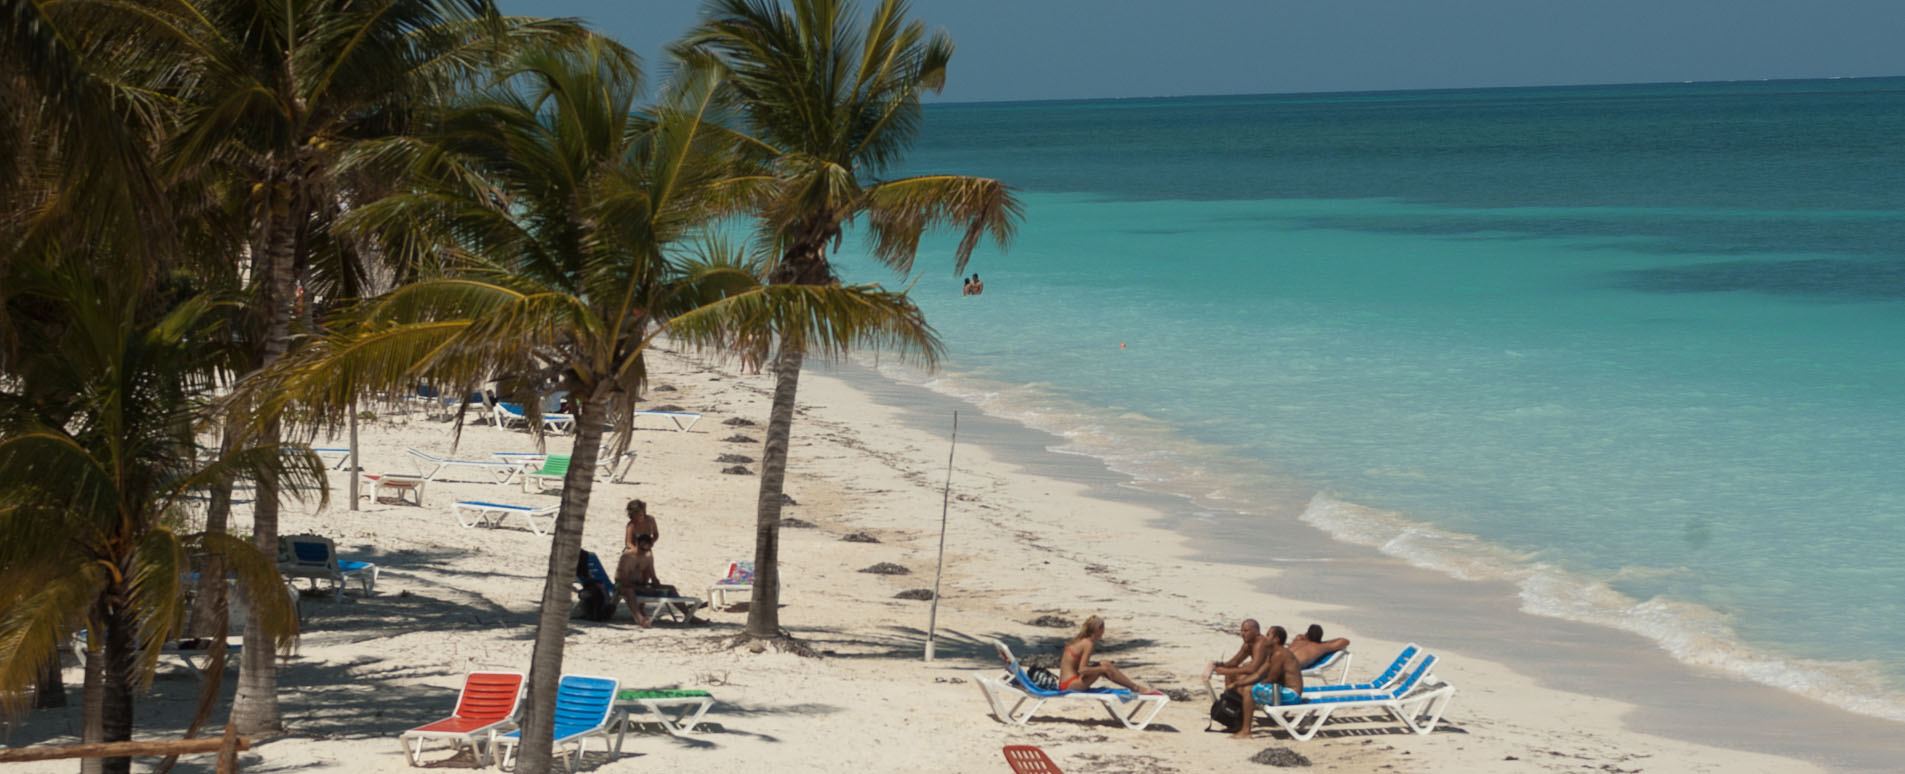 cuba beaches west